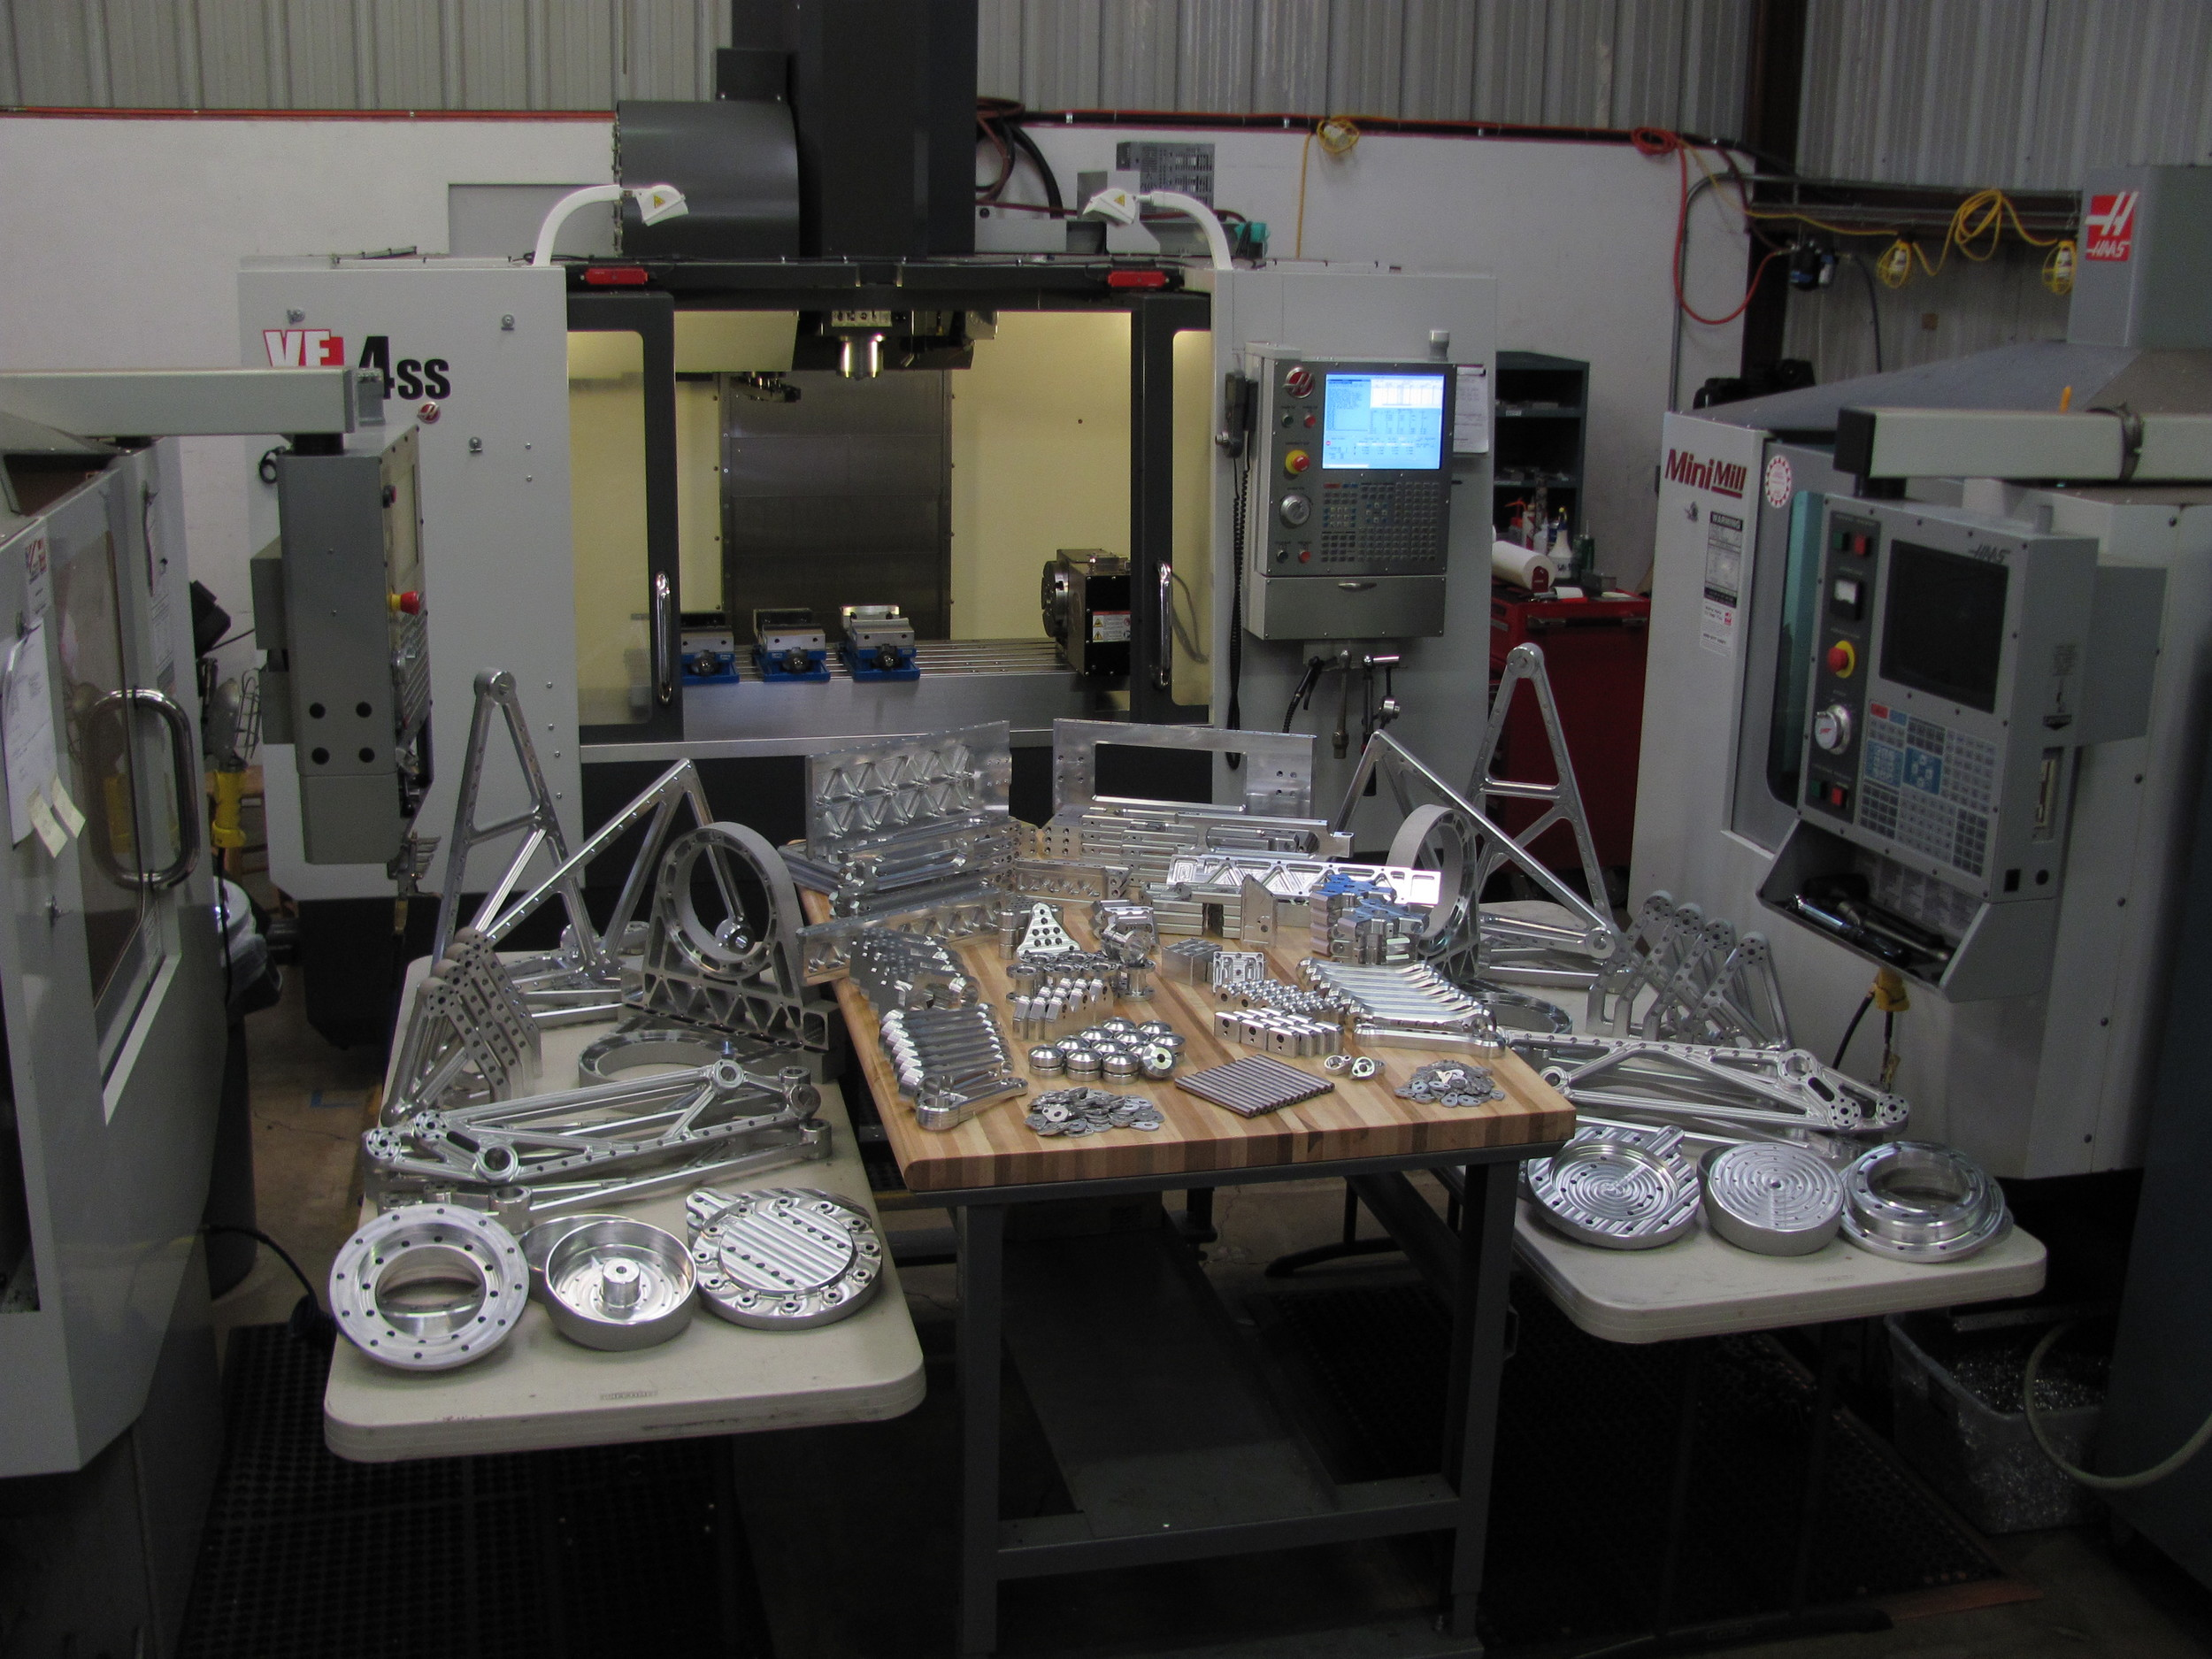 RMD Systems is available for contract design and manufacturing. We specialize in electro-mechanical system design, with a heavy emphasis on aerospace projects and industrial robotic systems.   RMD Systems has relationships with several machine shops and CAD/CAM vendors. With these relationships we are capable of providing the latest in CNC milling, turning, waterjet cutting and other advanced manufacturing tecniques .   We also utilizes the latest CAD software from Solidworks, as well as Solidworks Simulation Professional for FEA (finite element analysis). We also utilize OrCAD for our in-house PCB design. These tools let us deliver durable, reliable turn-key systems with minimal overhead.    Please feel free to contact us with your engineering and analysis needs.